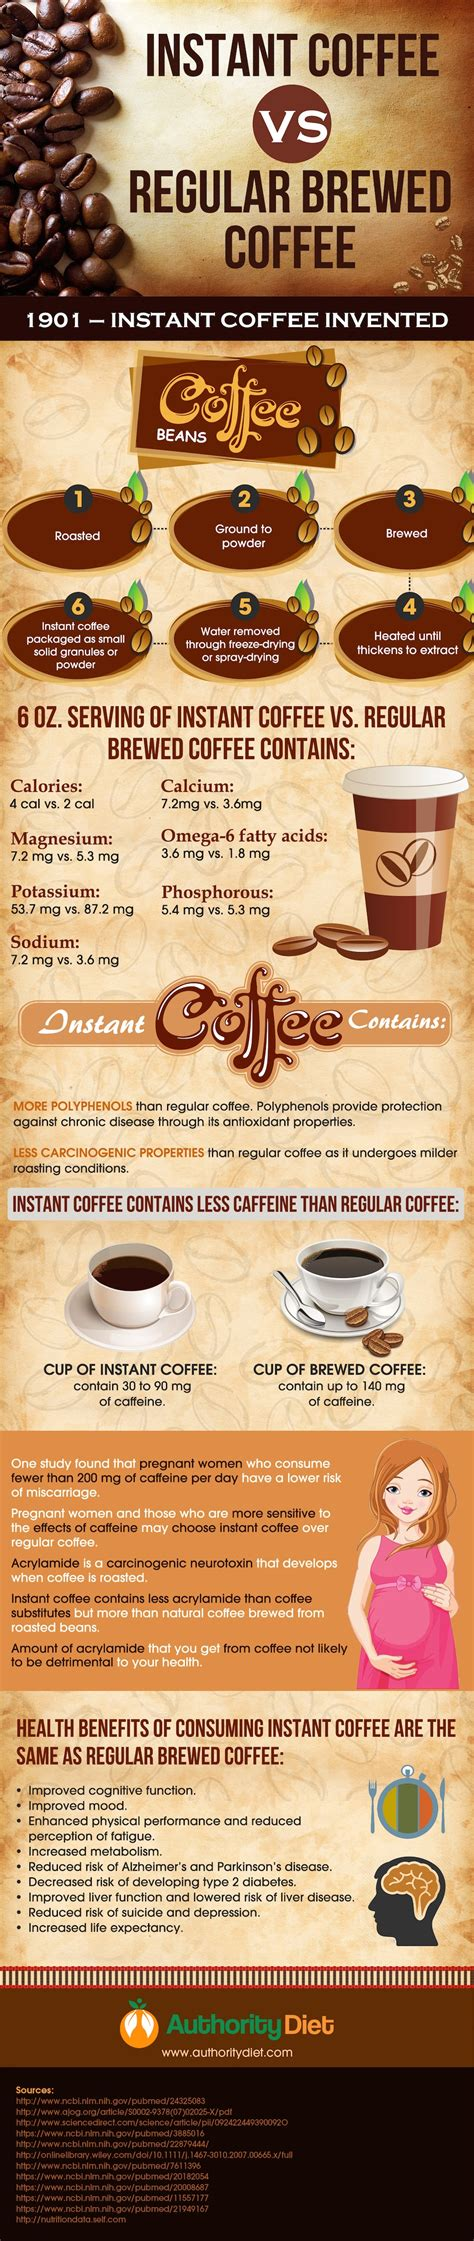 How long does coffee last? Instant Coffee Health Benefits - Weight Loss Plans: Keto No Carb Low Carb Gluten-free Weightloss ...